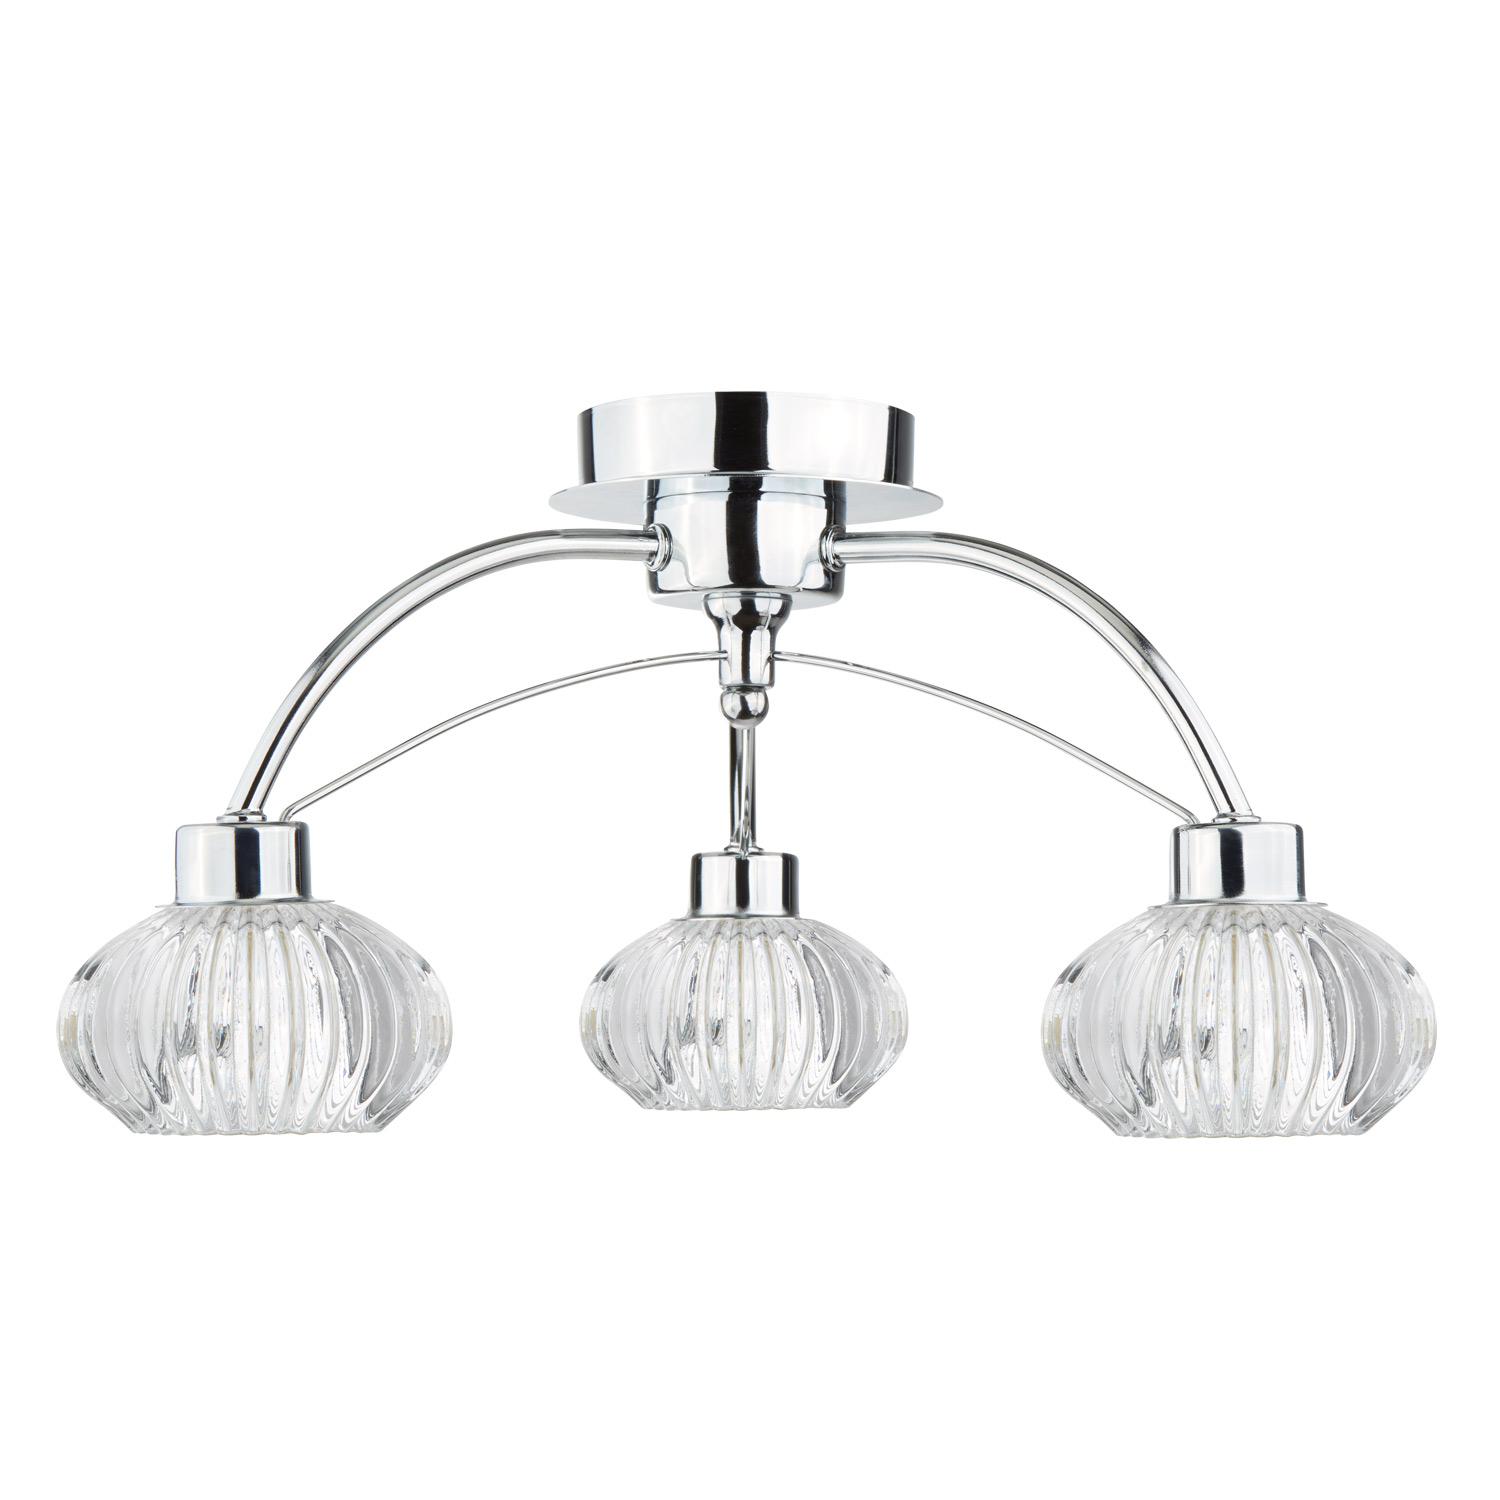 3 Light Ceiling Pendant with Shades